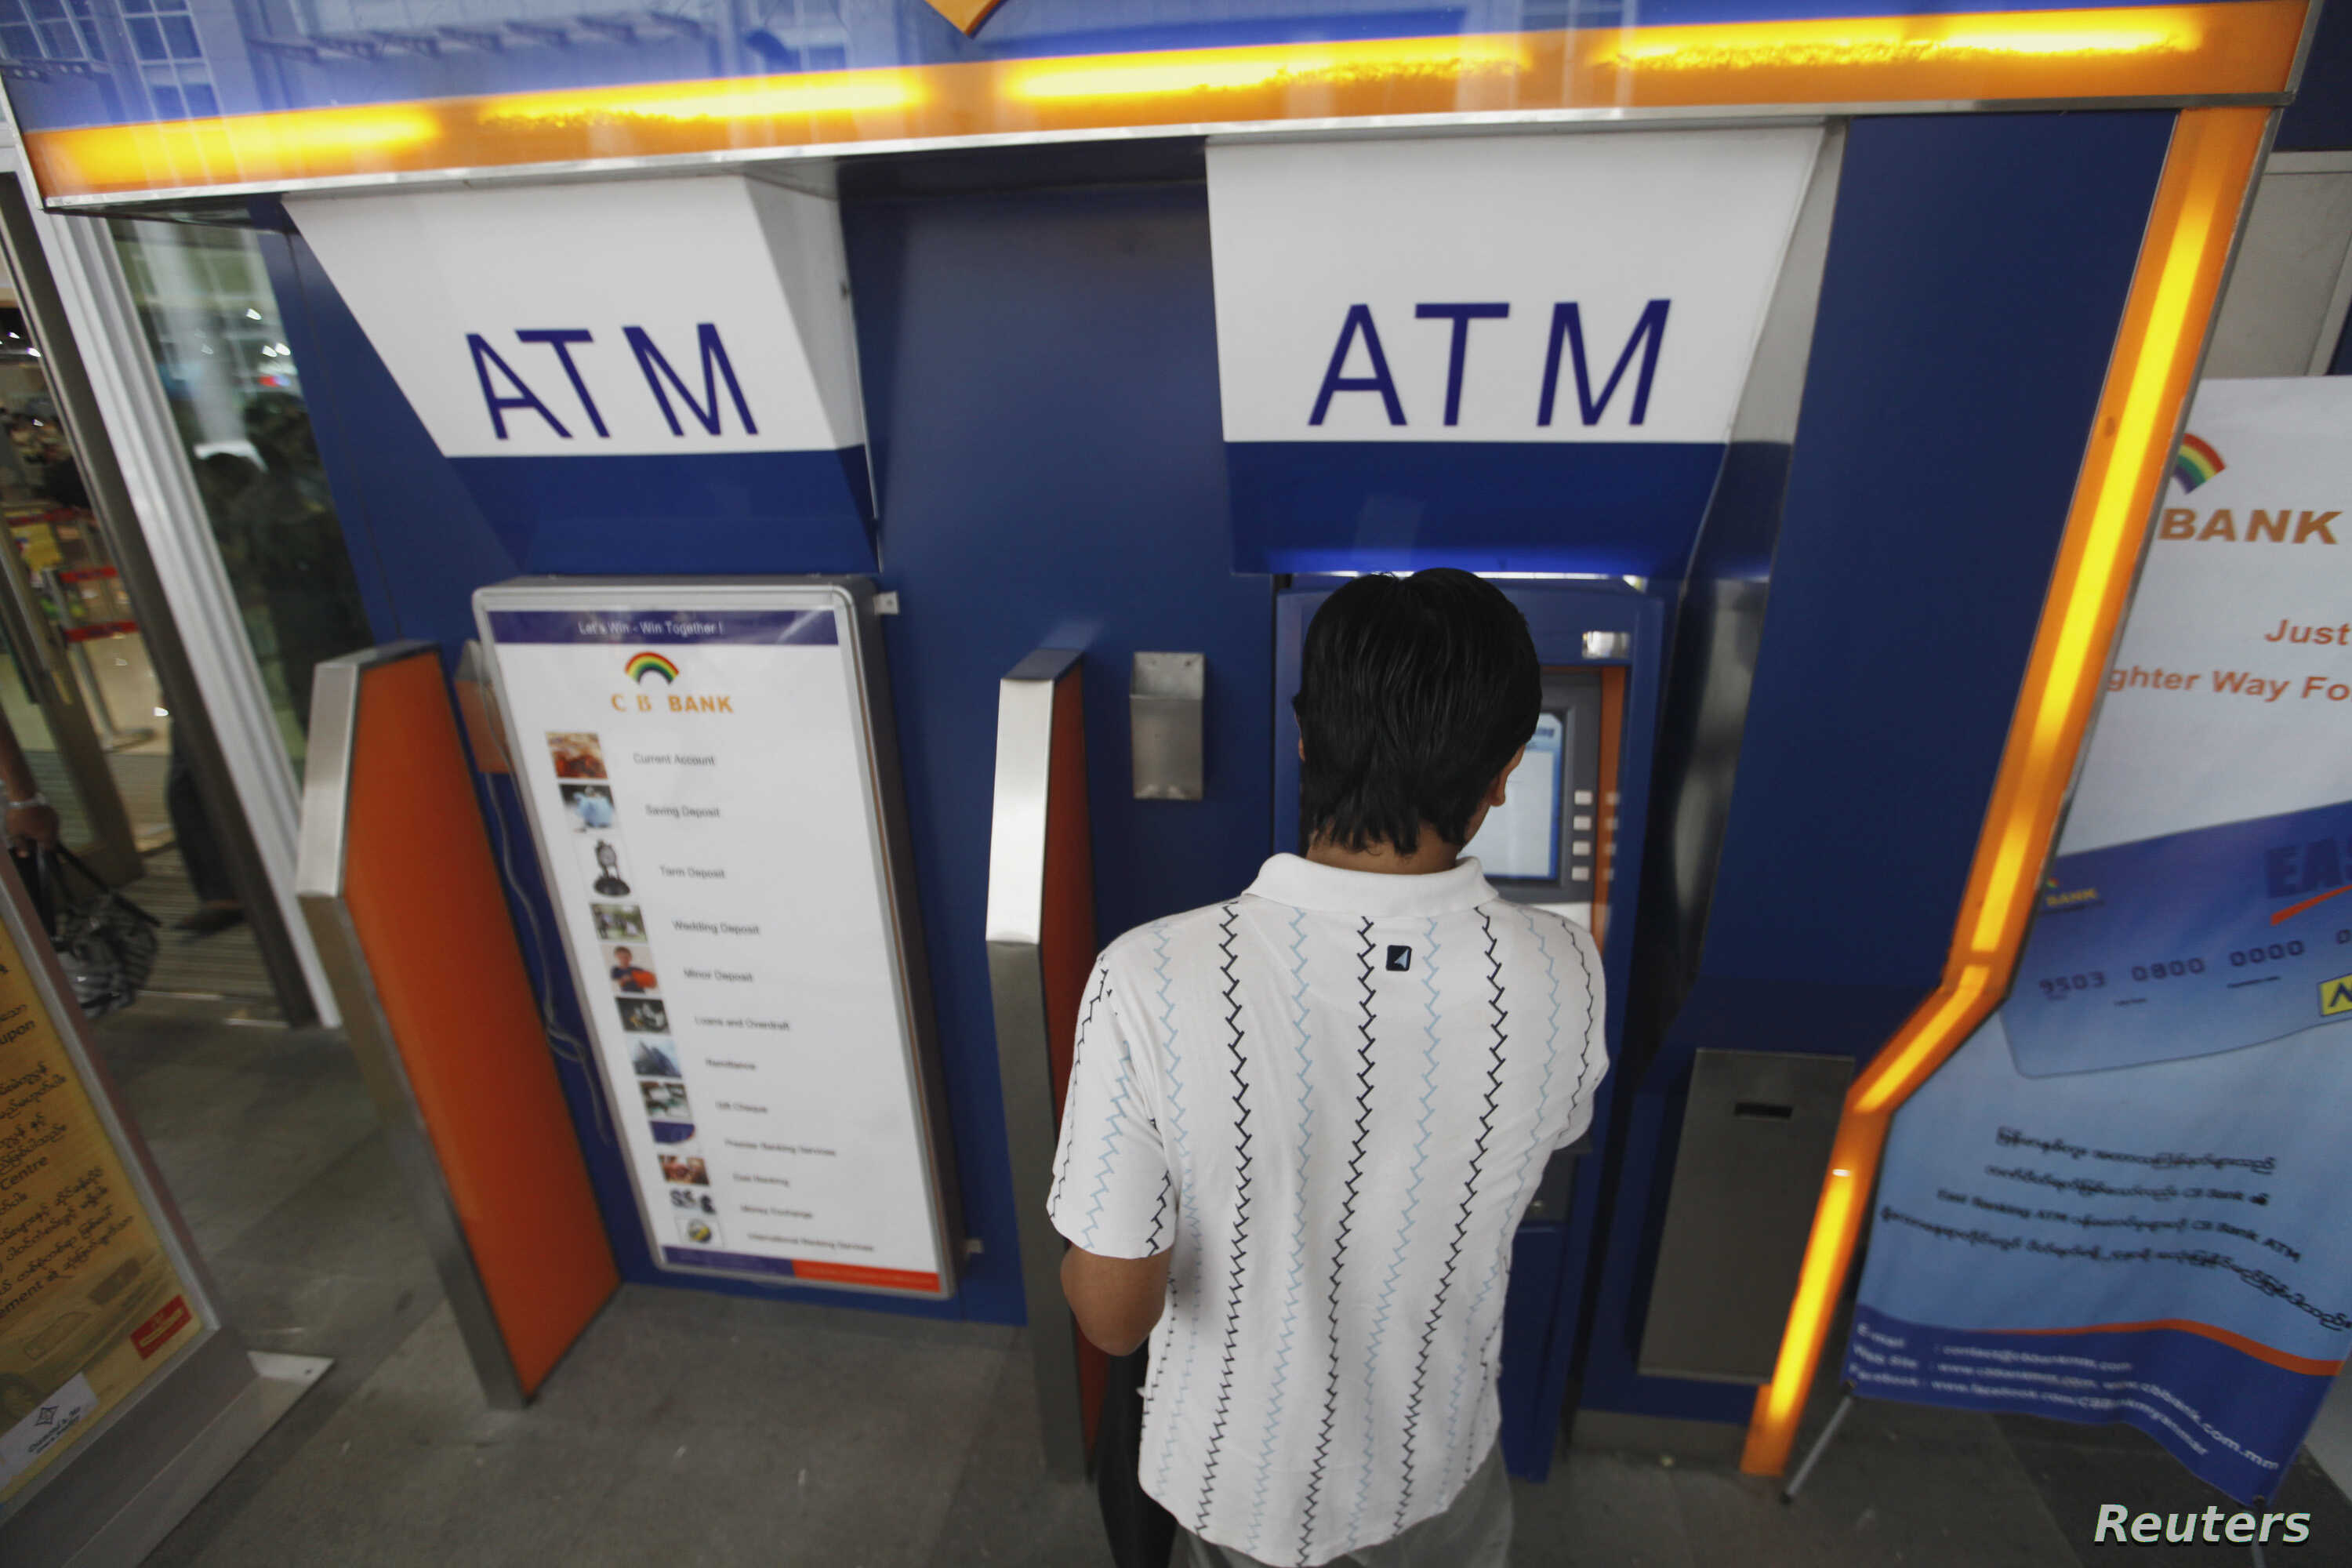 A man uses an automated teller machine (ATM) machine at a shopping center in Yangon, Burma, May 27, 2012.